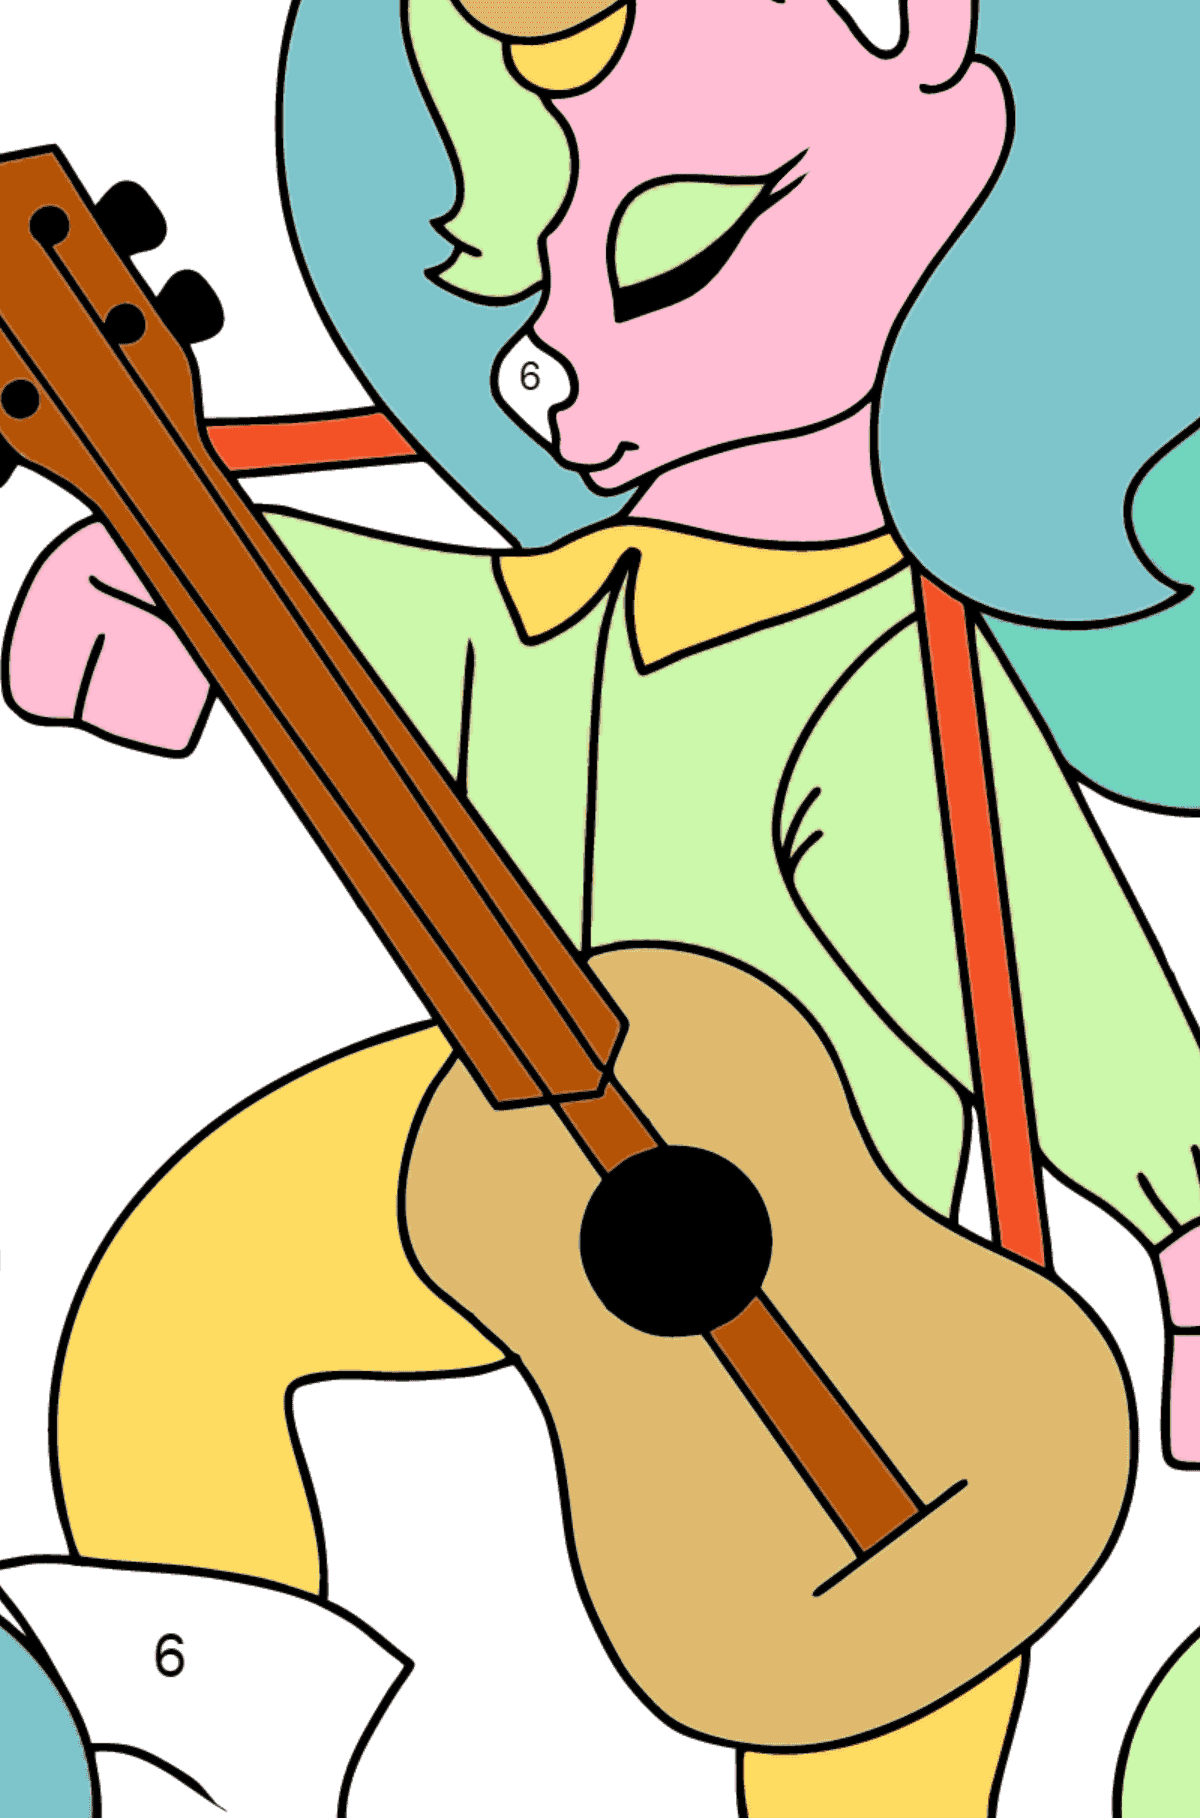 Coloring Page - A Unicorn with a Guitar - Coloring by Numbers for Kids